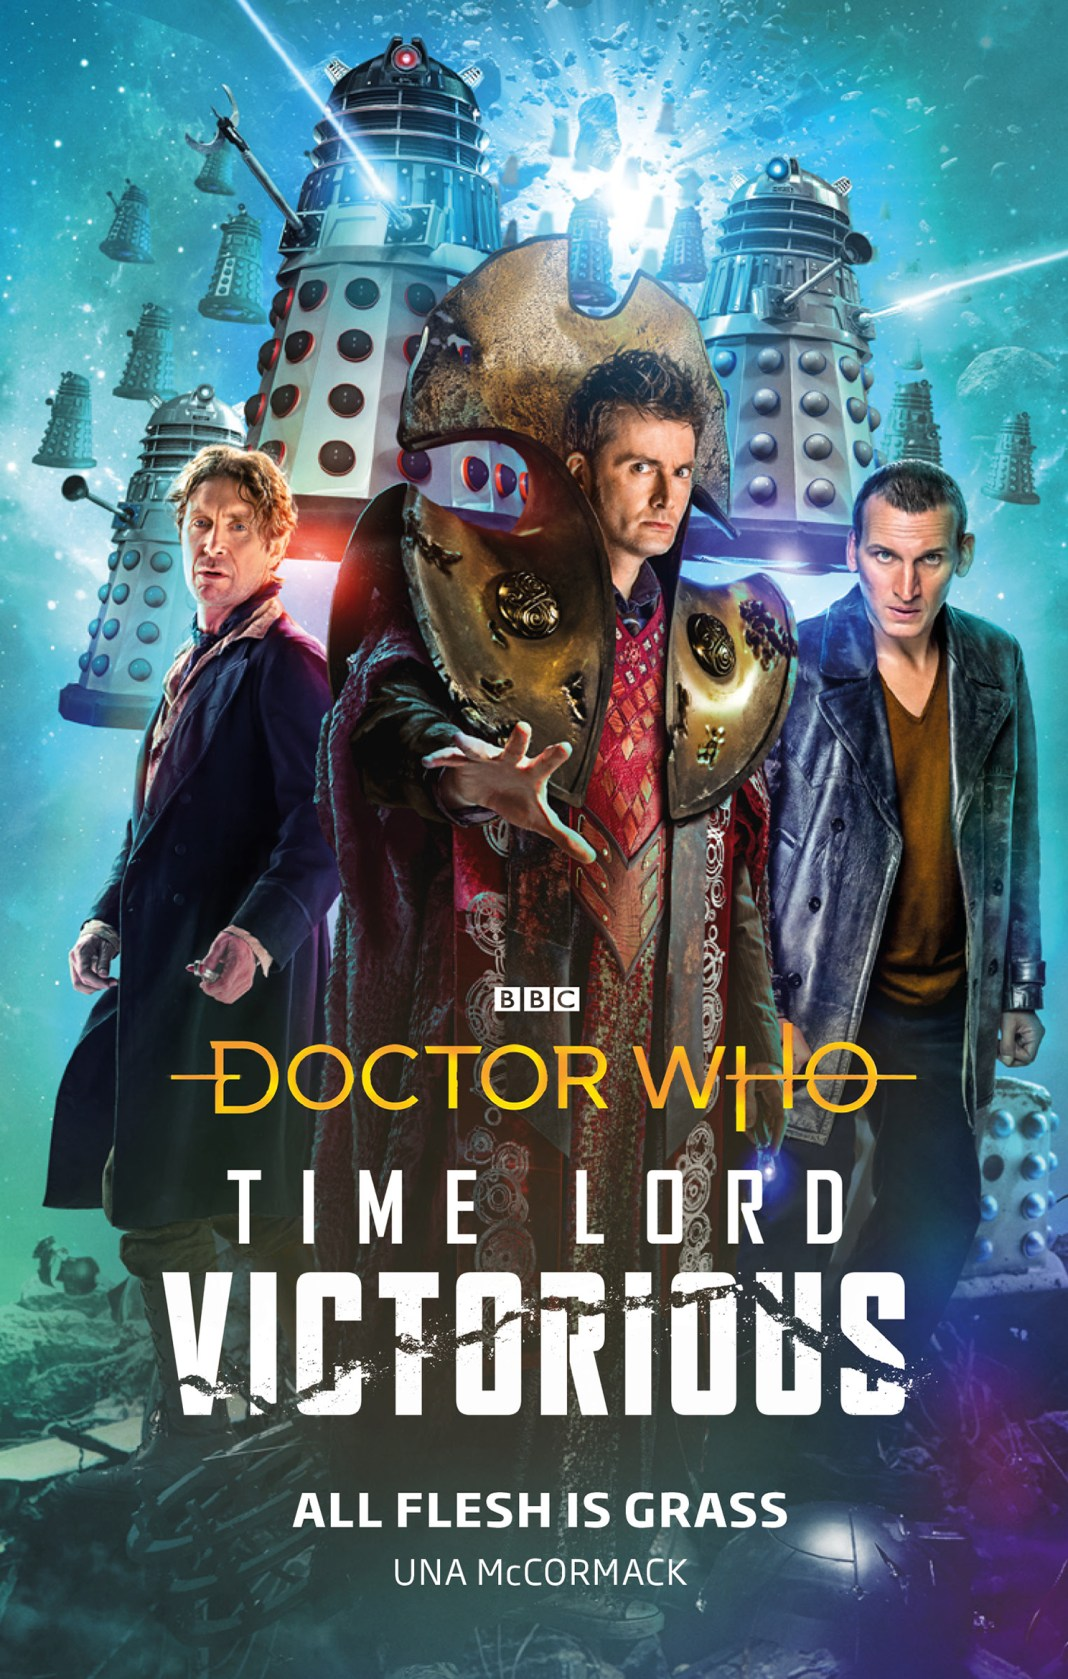 Doctor Who: All Flesh Is Grass (c) BBC Books Time Lord Victorious Tenth Doctor Eighth Doctor Ninth Doctor Daleks BBC Books